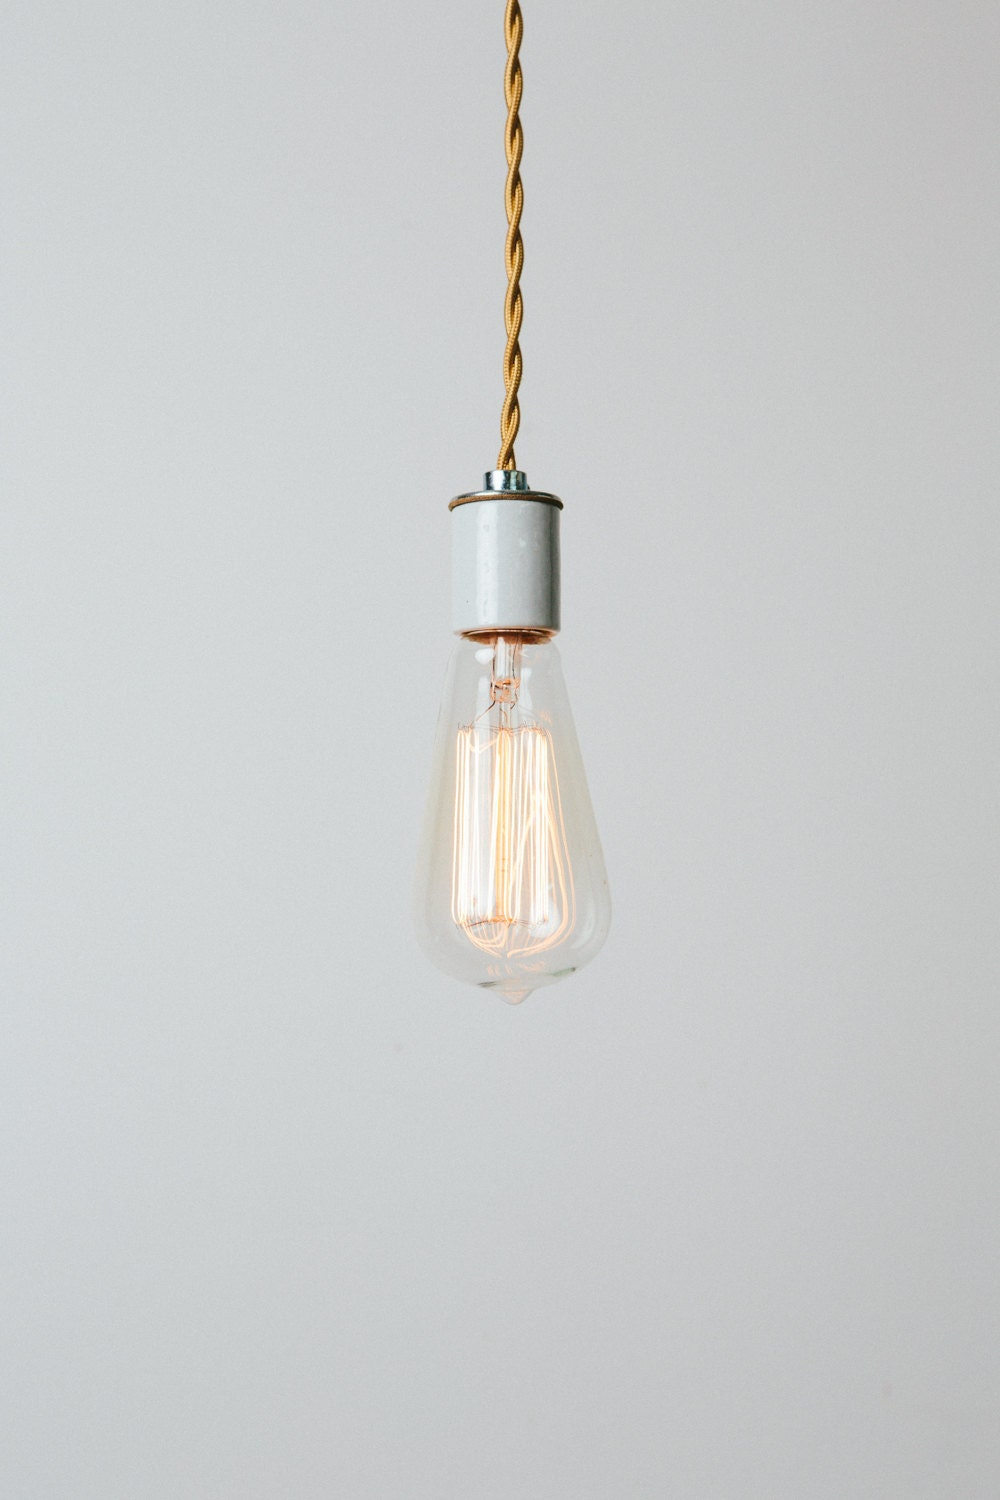 Bare Bulb Pendant Light with Handmade Copper by KhalimaLights